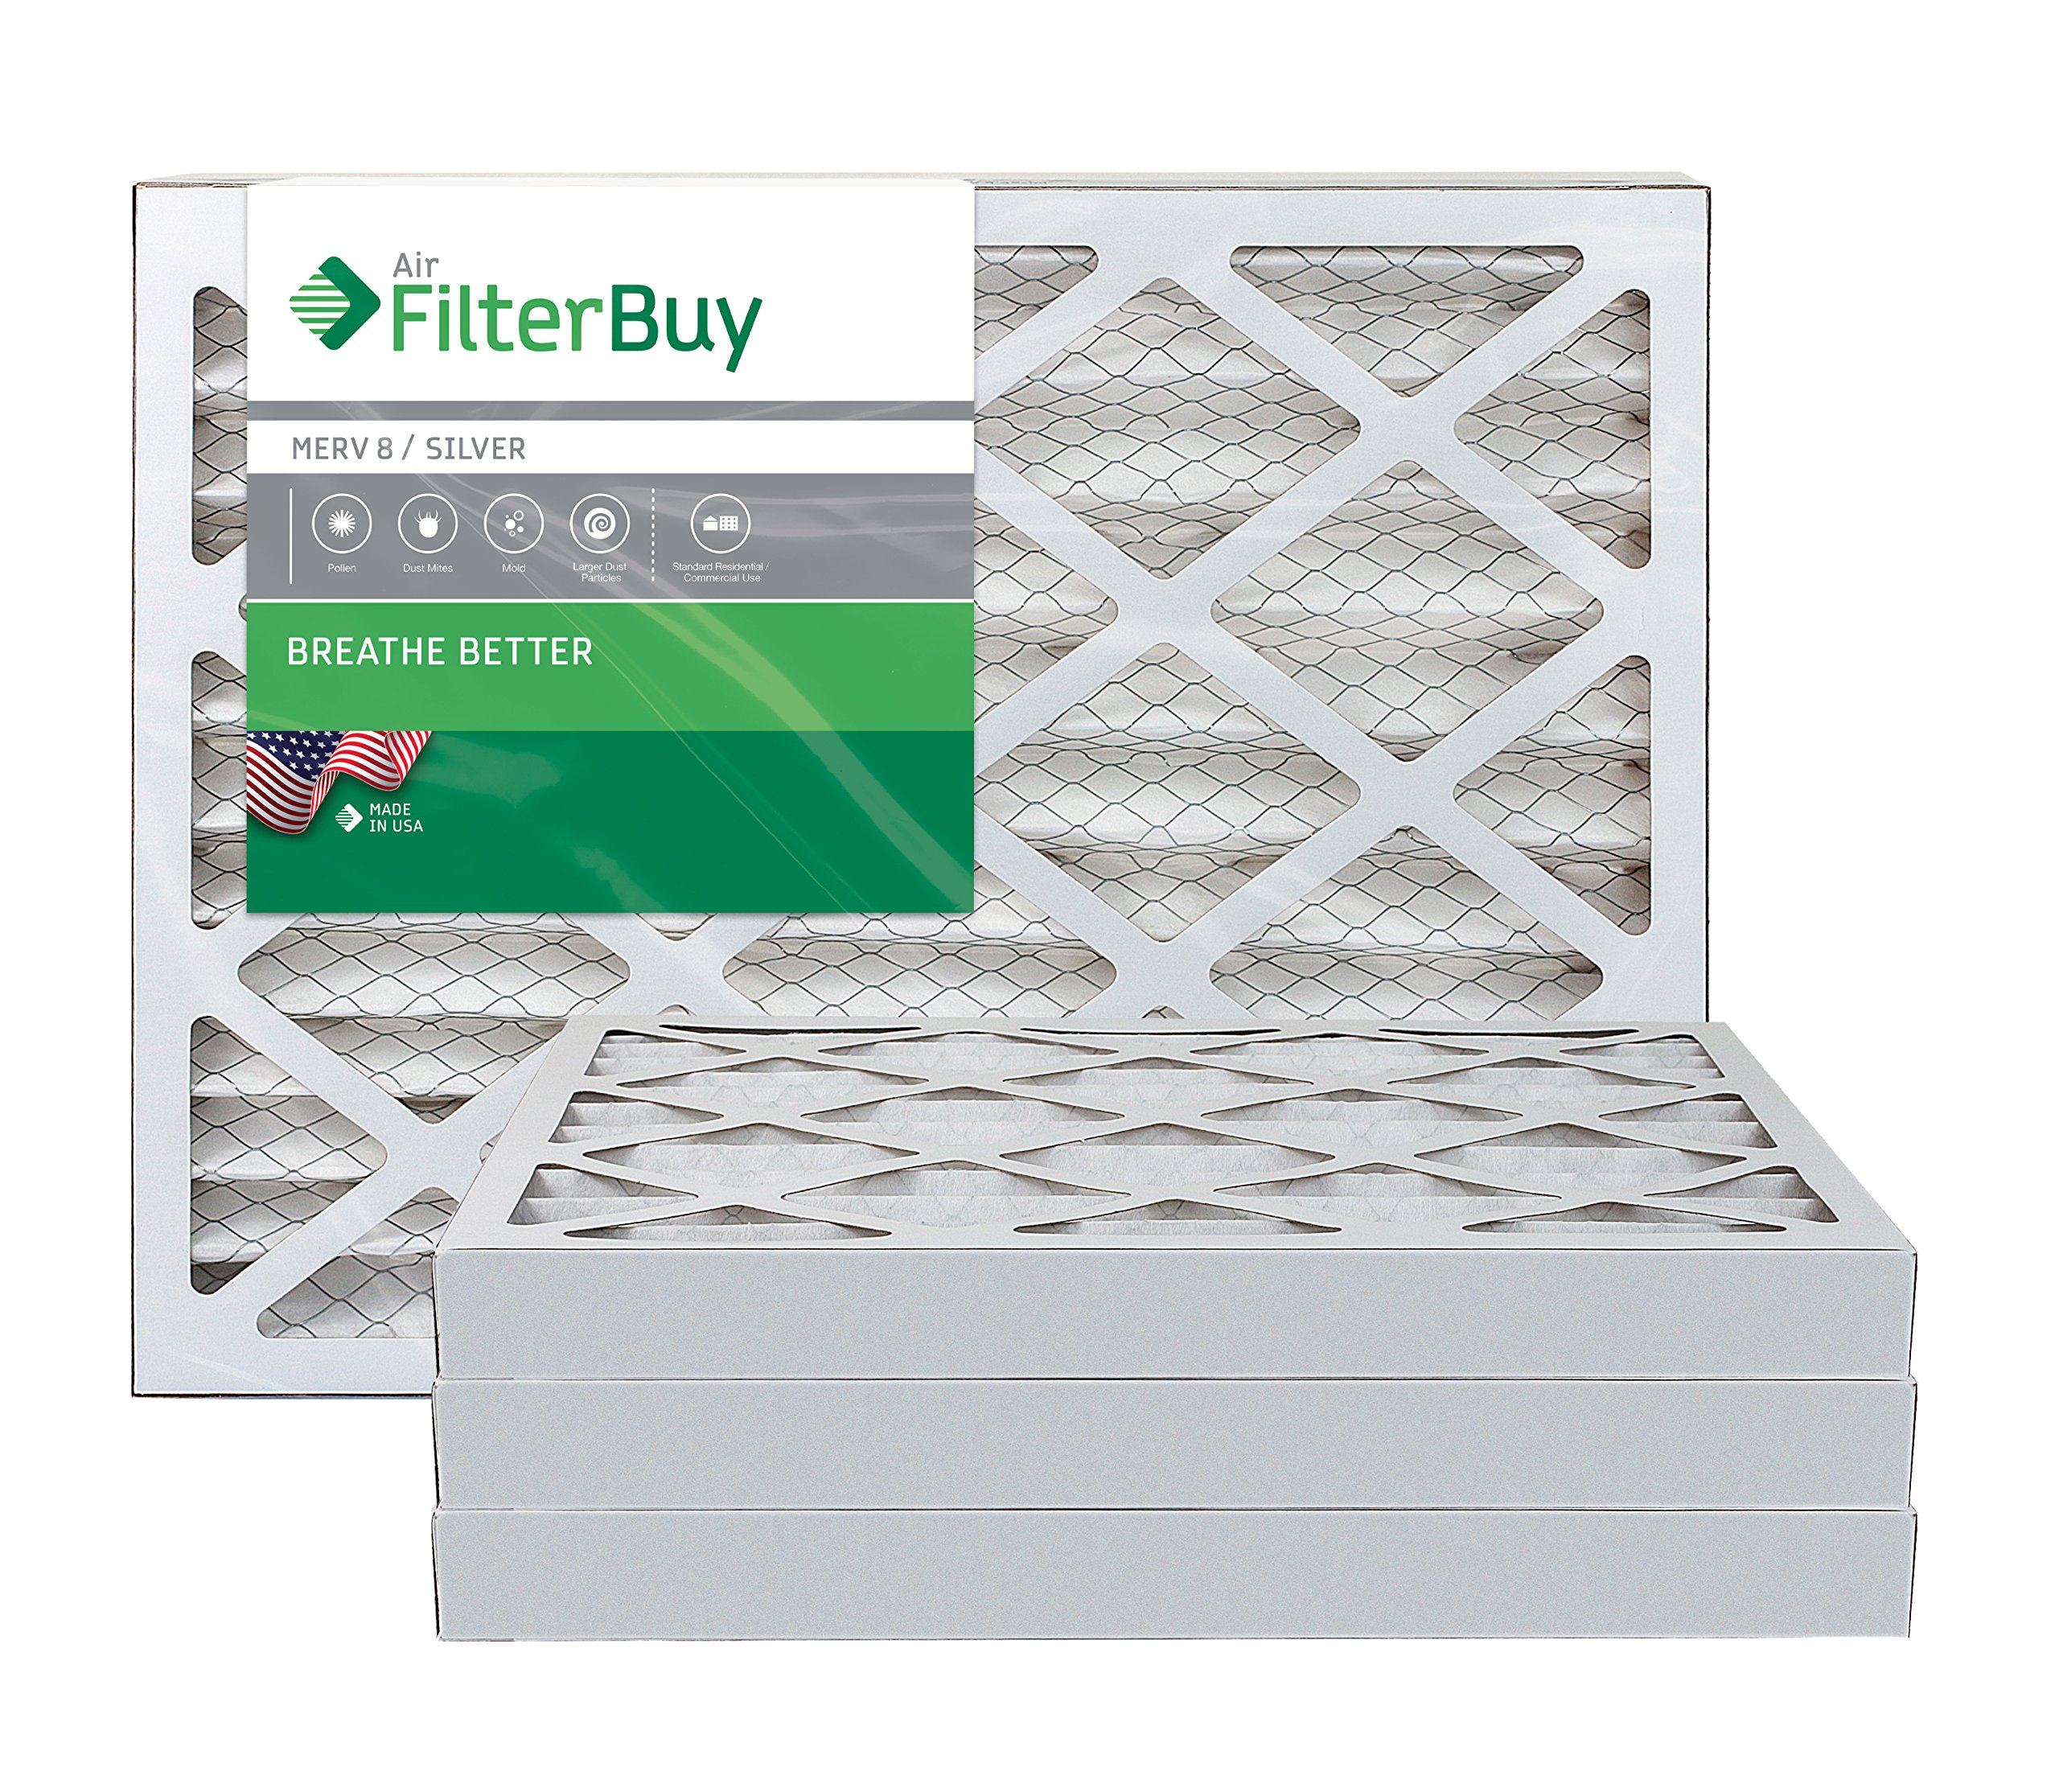 FilterBuy 17.5x23.5x2 MERV 8 Pleated AC Furnace Air Filter, (Pack of 4 Filters), 17.5x23.5x2 – Silver